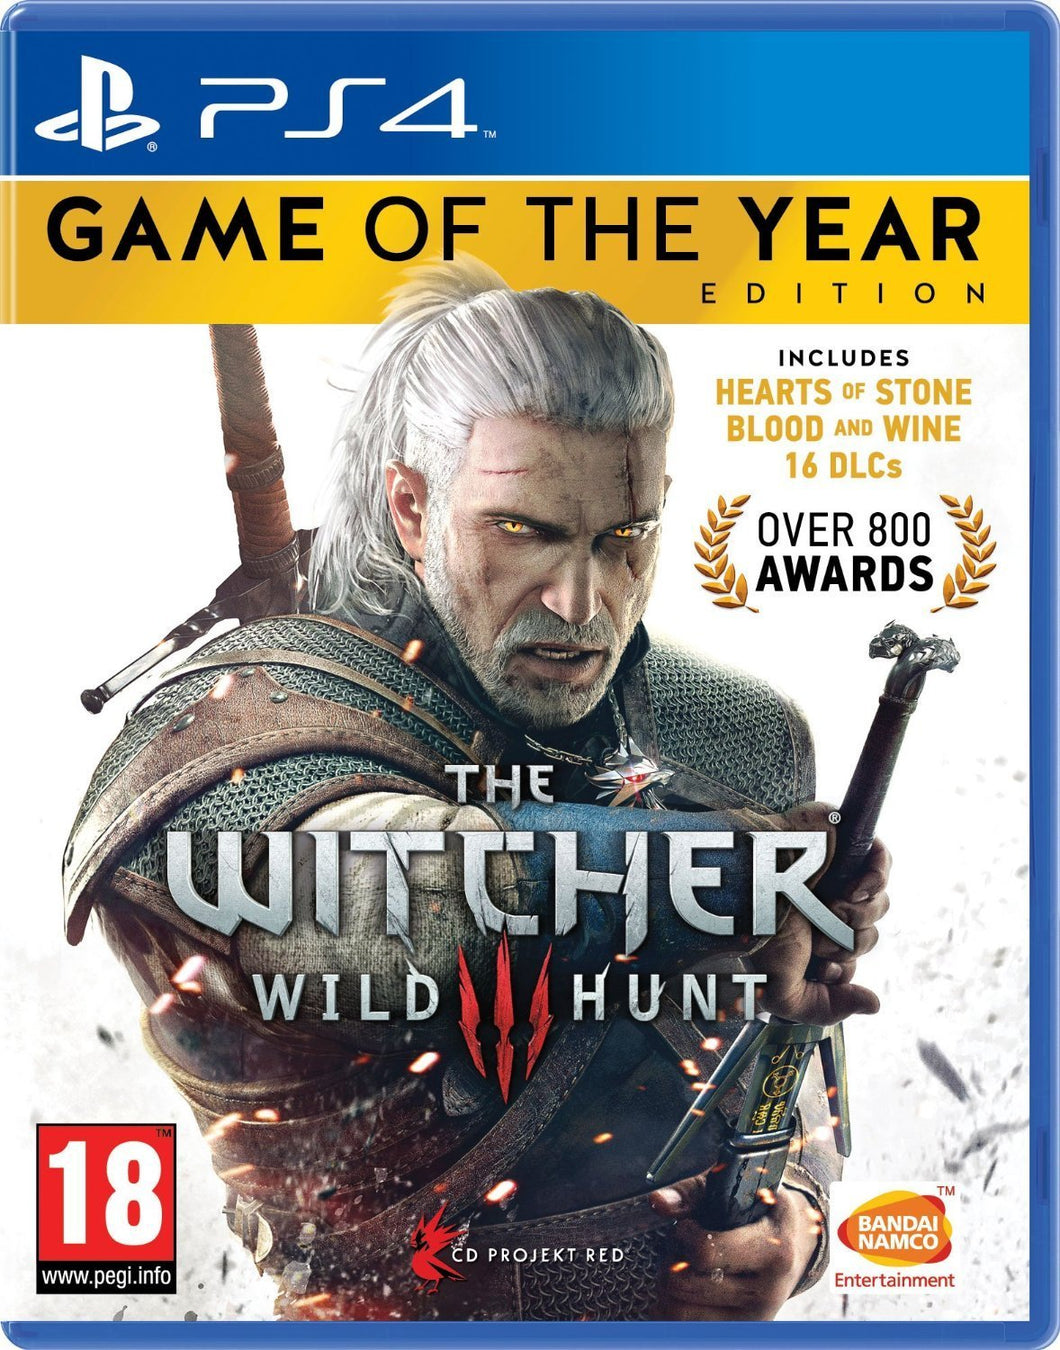 The Witcher 3: Wild Hunt - Game of the Year Edition - PlayStation 4